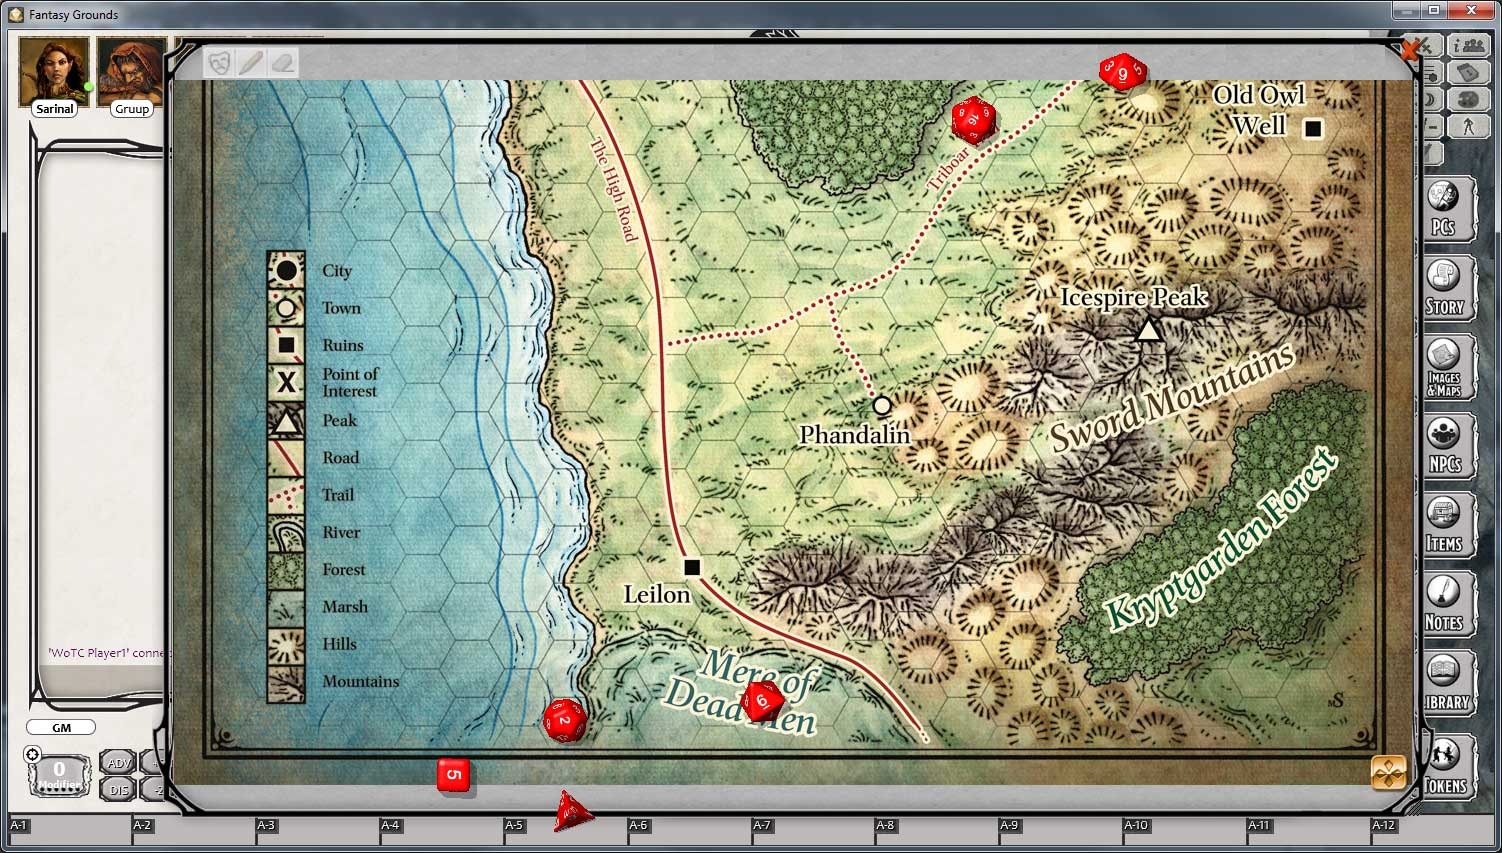 Wizards of the Coast and Fantasy Grounds Team Up for Virtual D&D